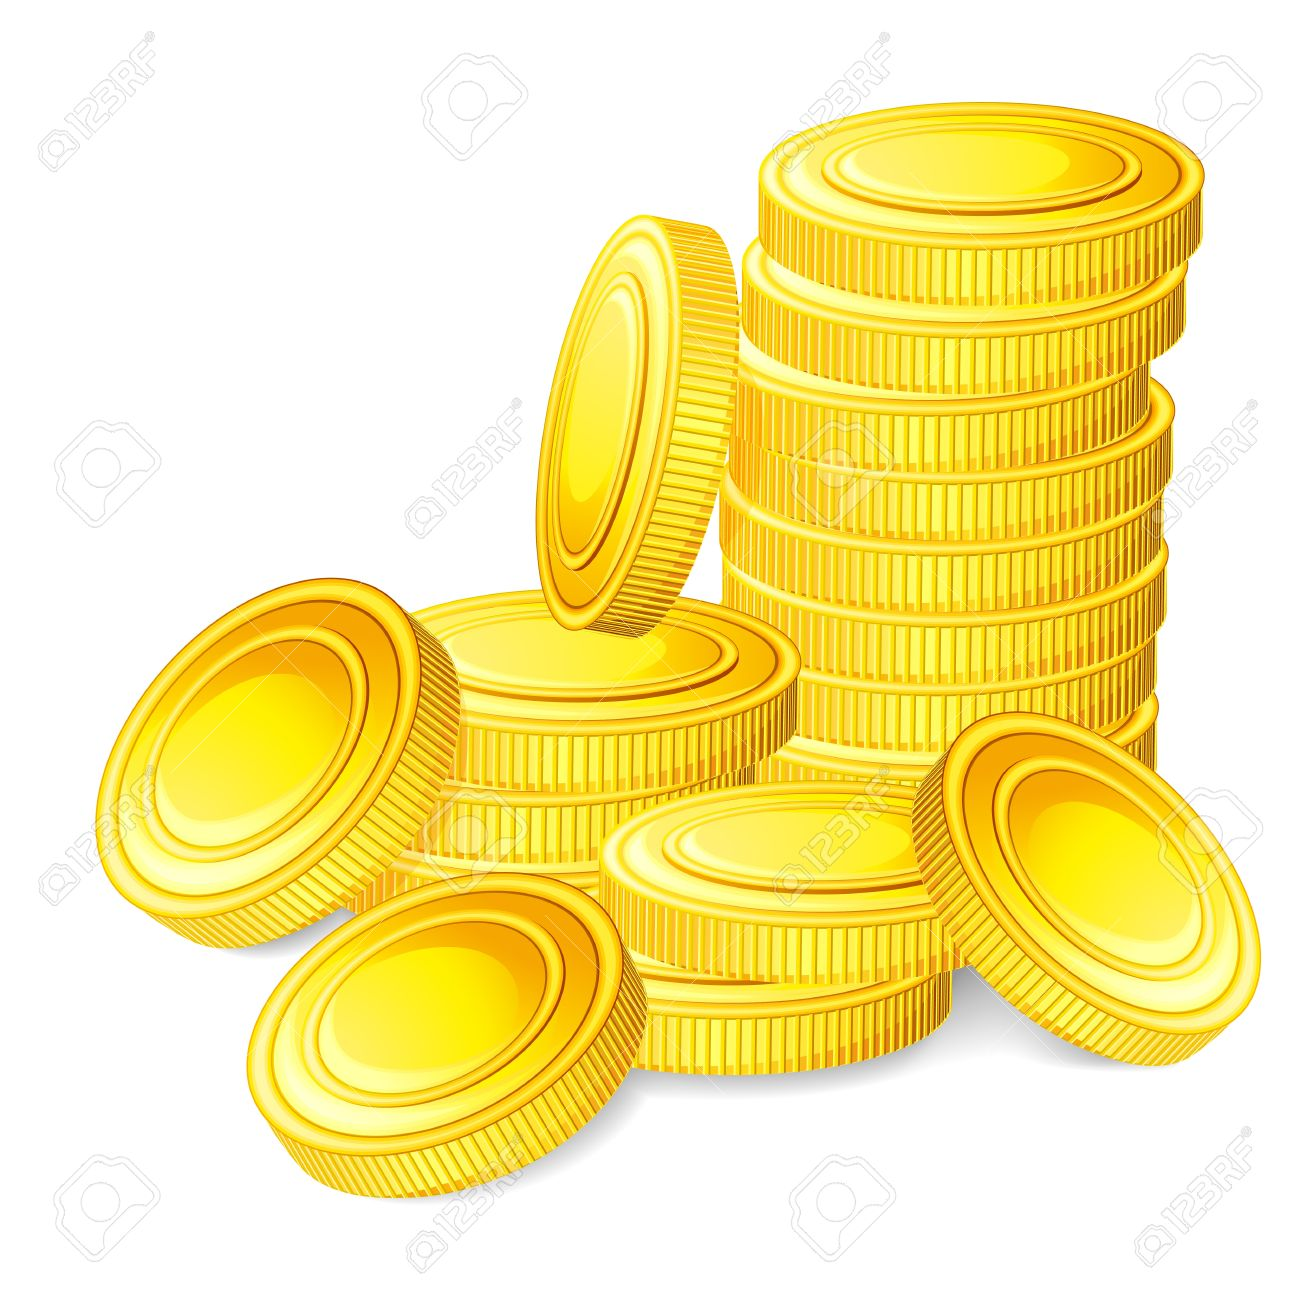 2886 Coin free clipart.